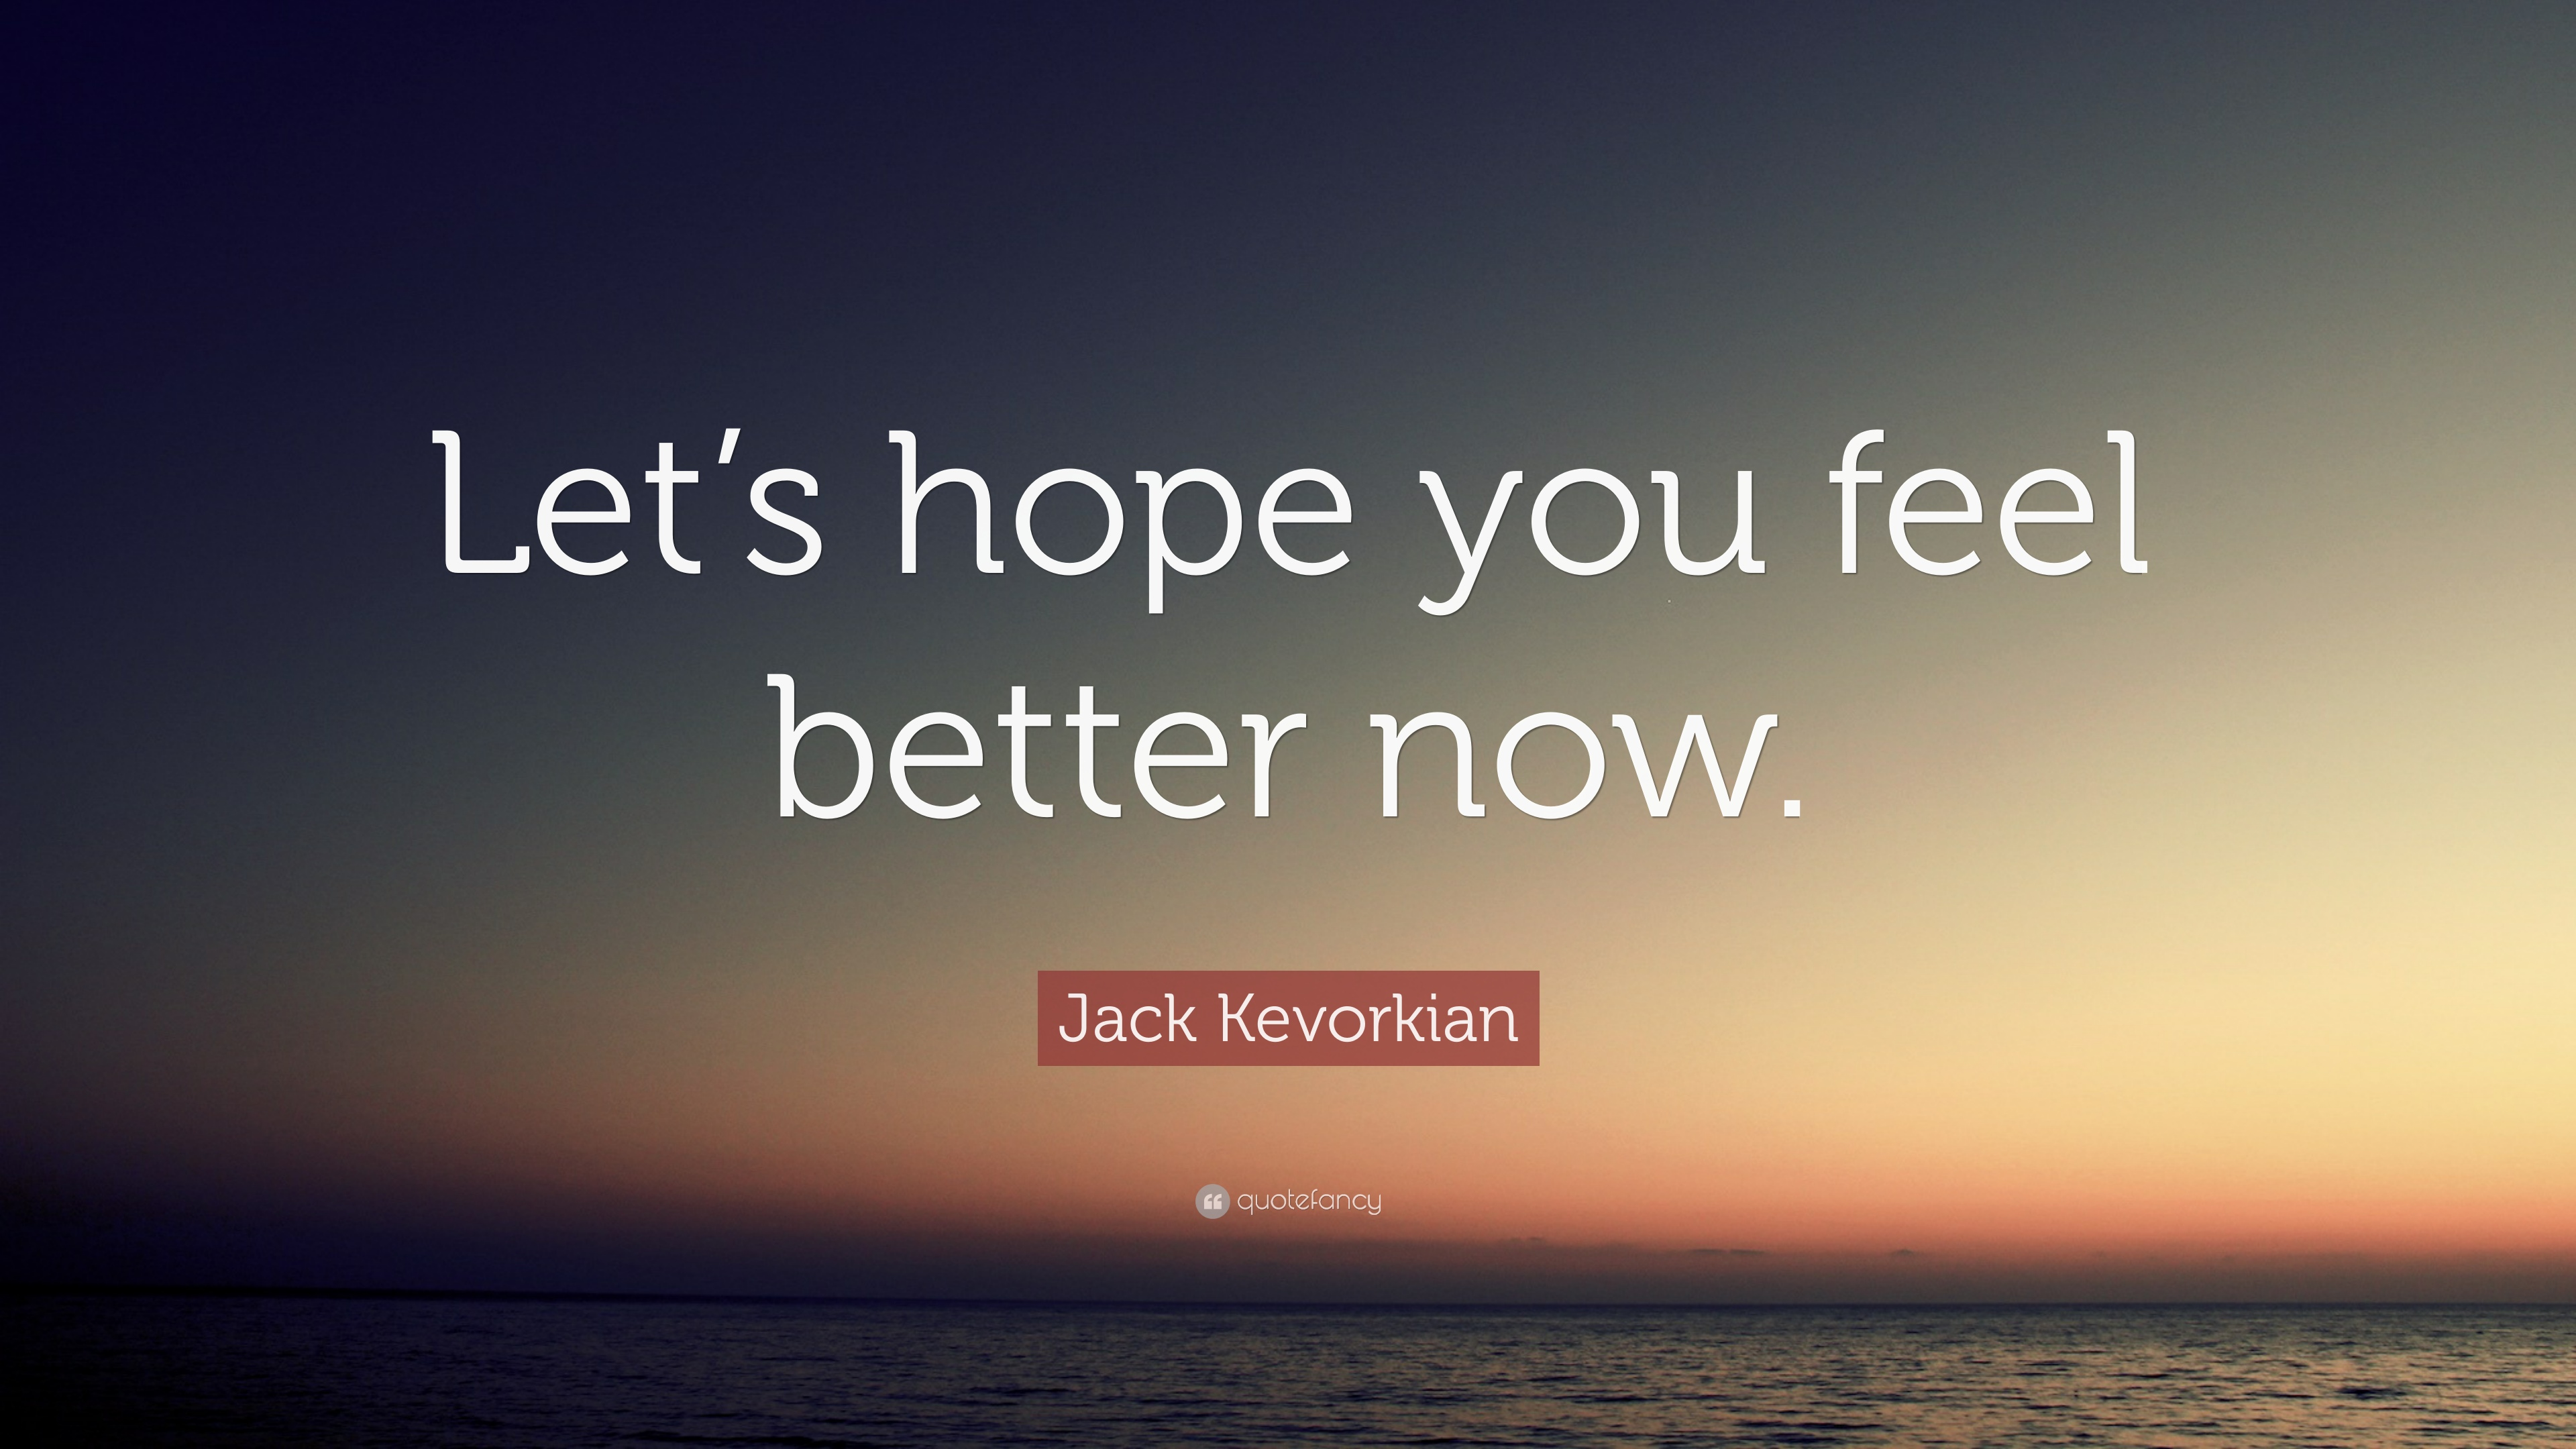 "Jack Kevorkian Quotes Jack Kevorkian Quote ""Let's Hope You Feel Better Now."" 12"